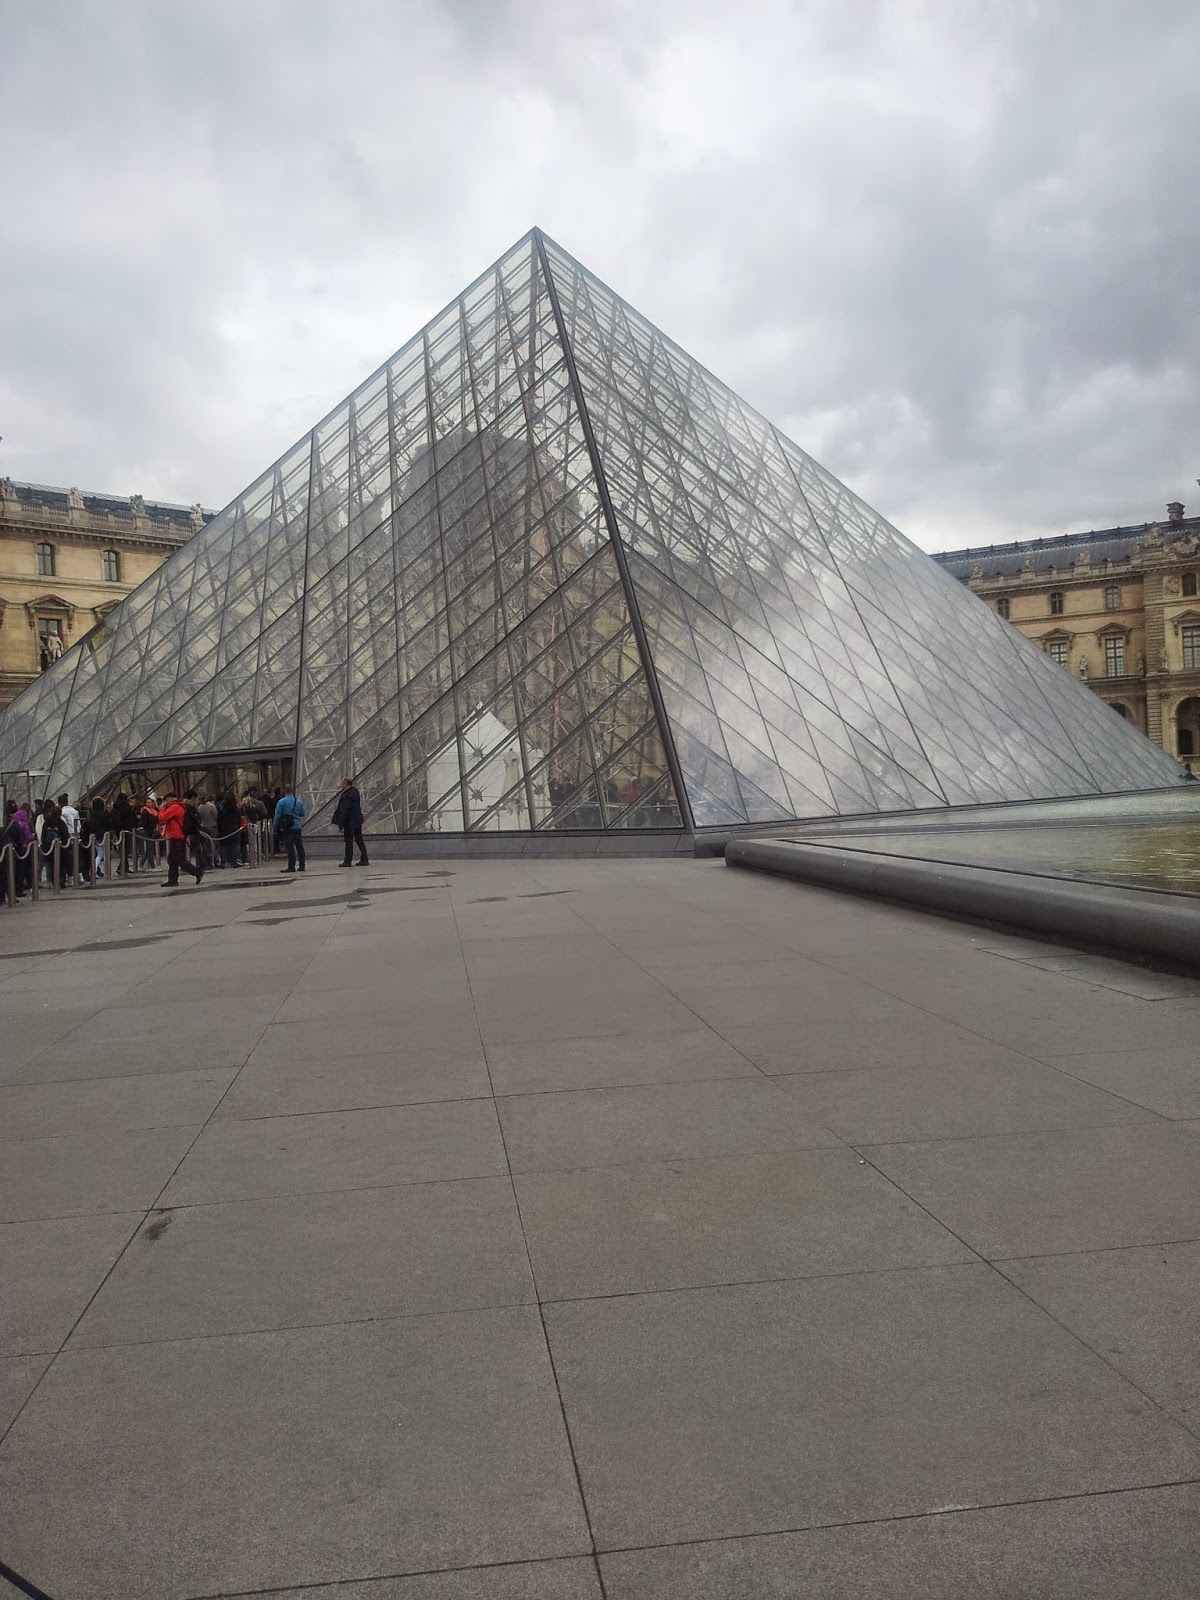 The glass at The Louvre, Paris